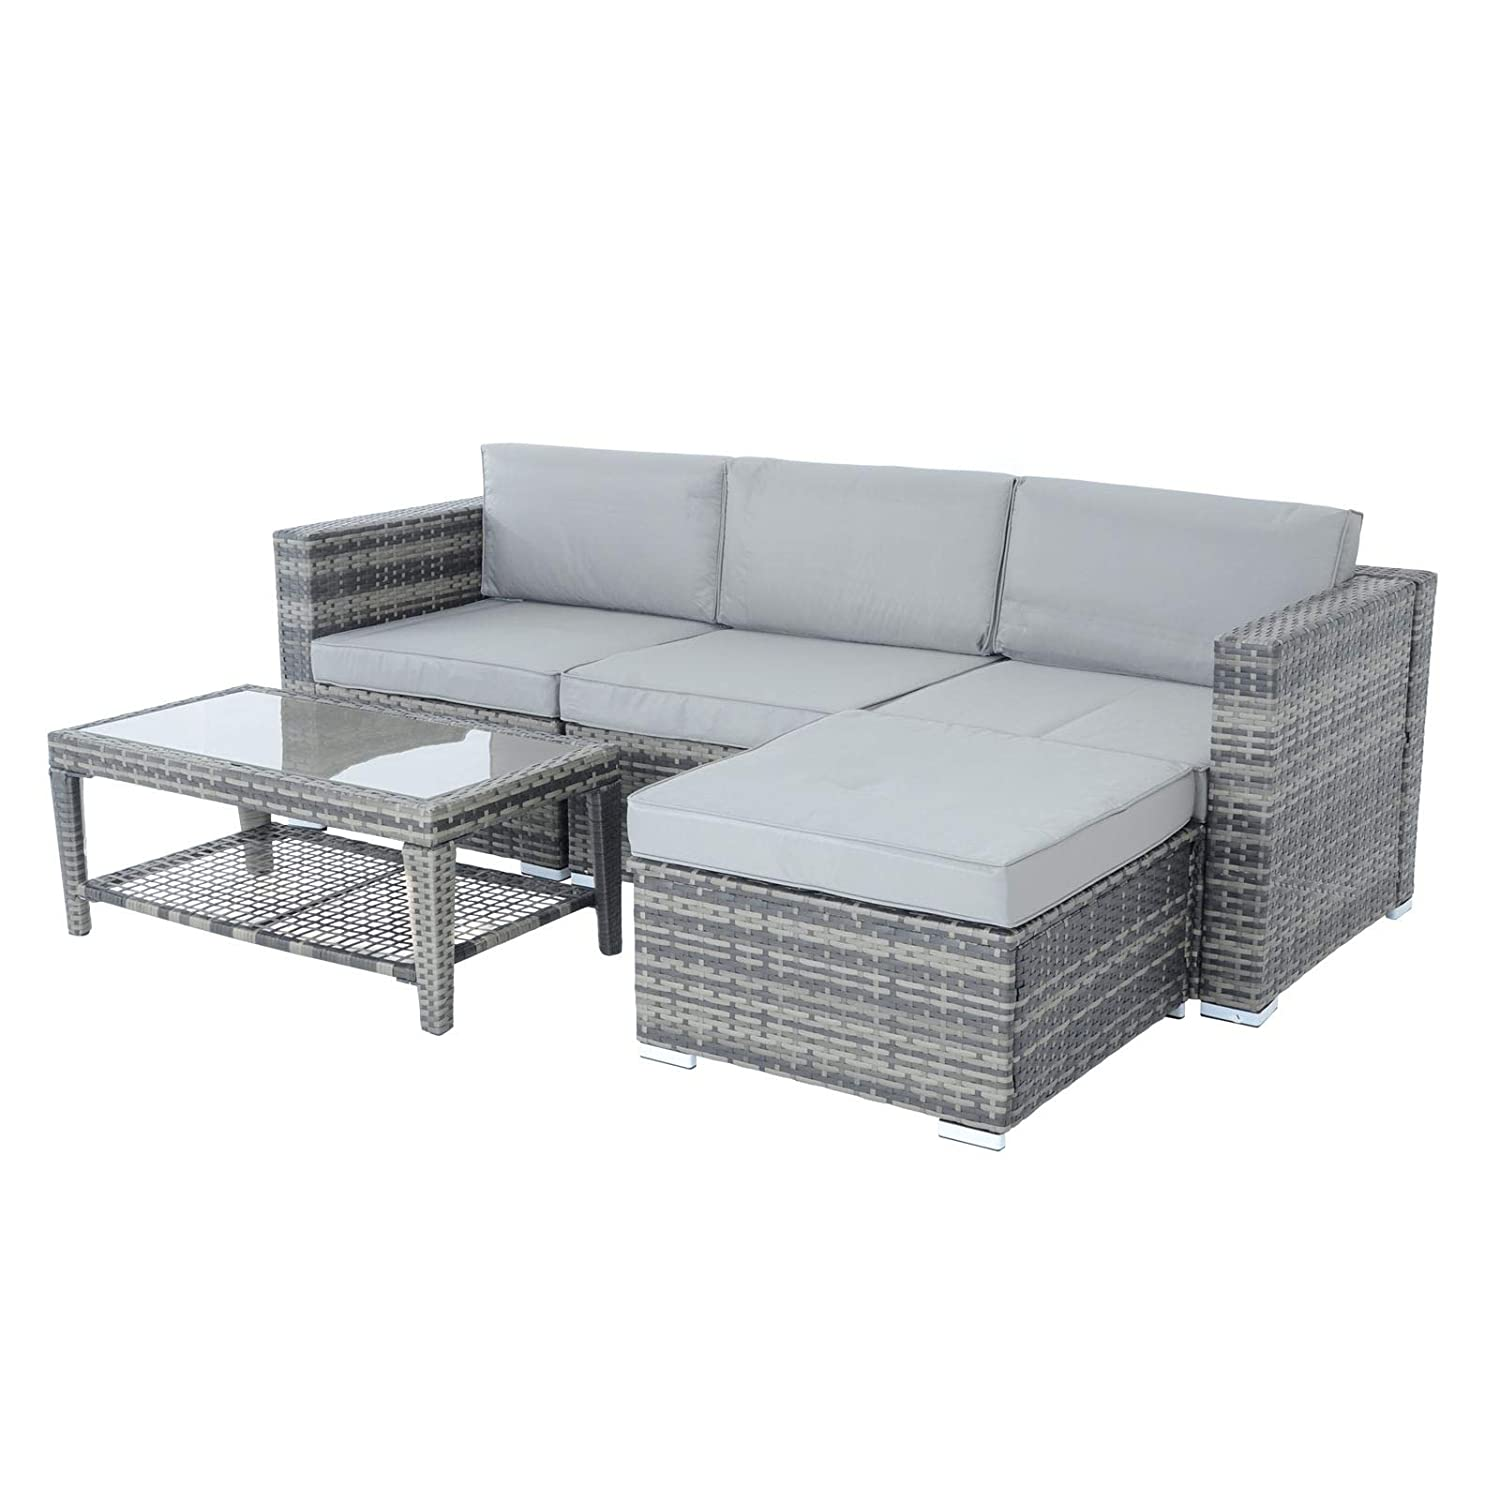 Pleasing Azuma Monaco 5 Piece Rattan Garden Furniture Set Outdoor Seating With Grey Natural Sofa Chair Seat Coffee Table Footstool Storage Ottoman For Patio Alphanode Cool Chair Designs And Ideas Alphanodeonline